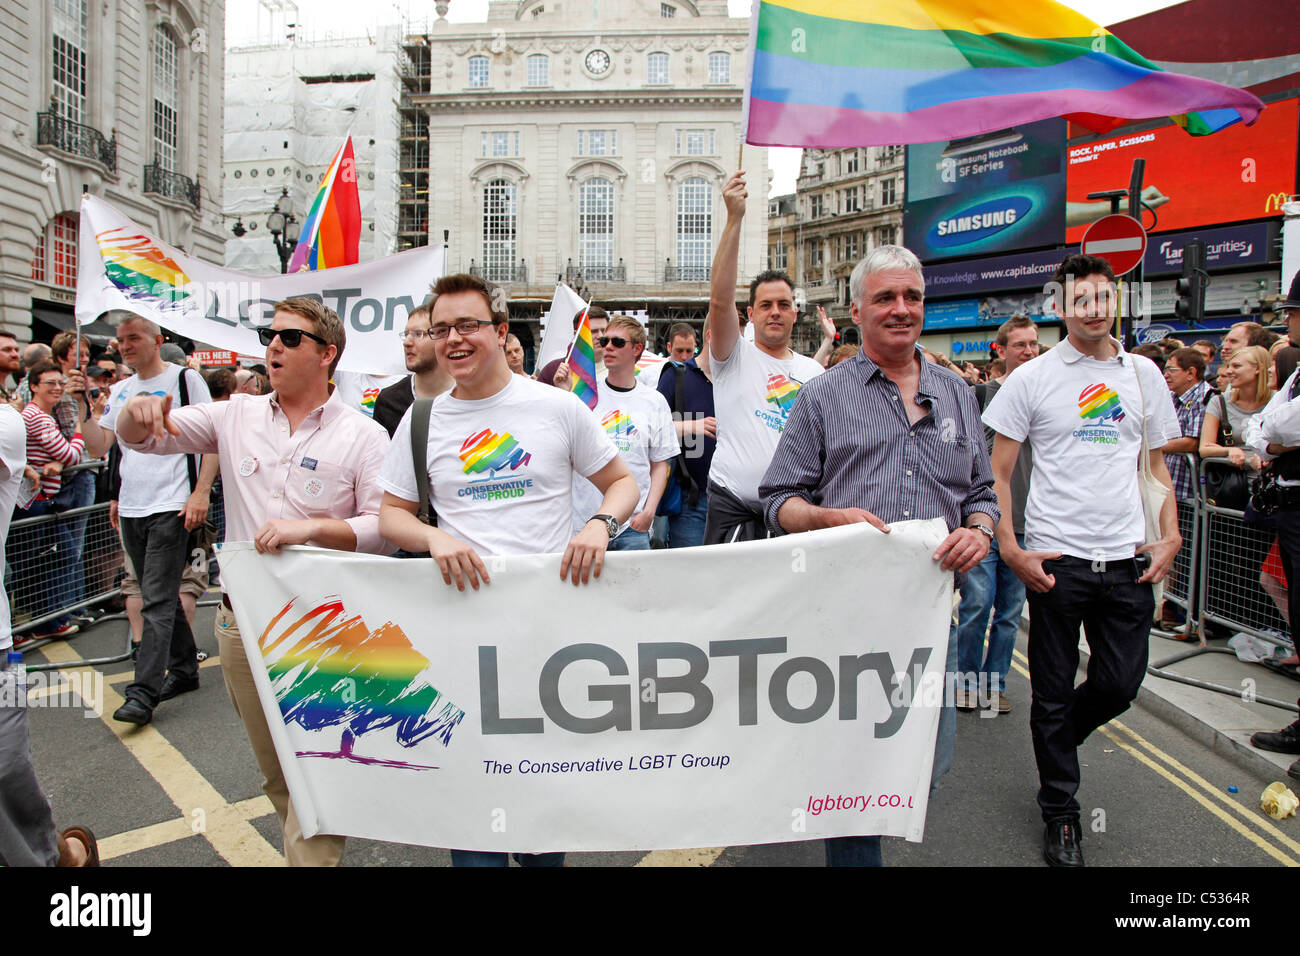 LGBT Tory participants in the London Gay Pride Parade 2011 - Stock Image